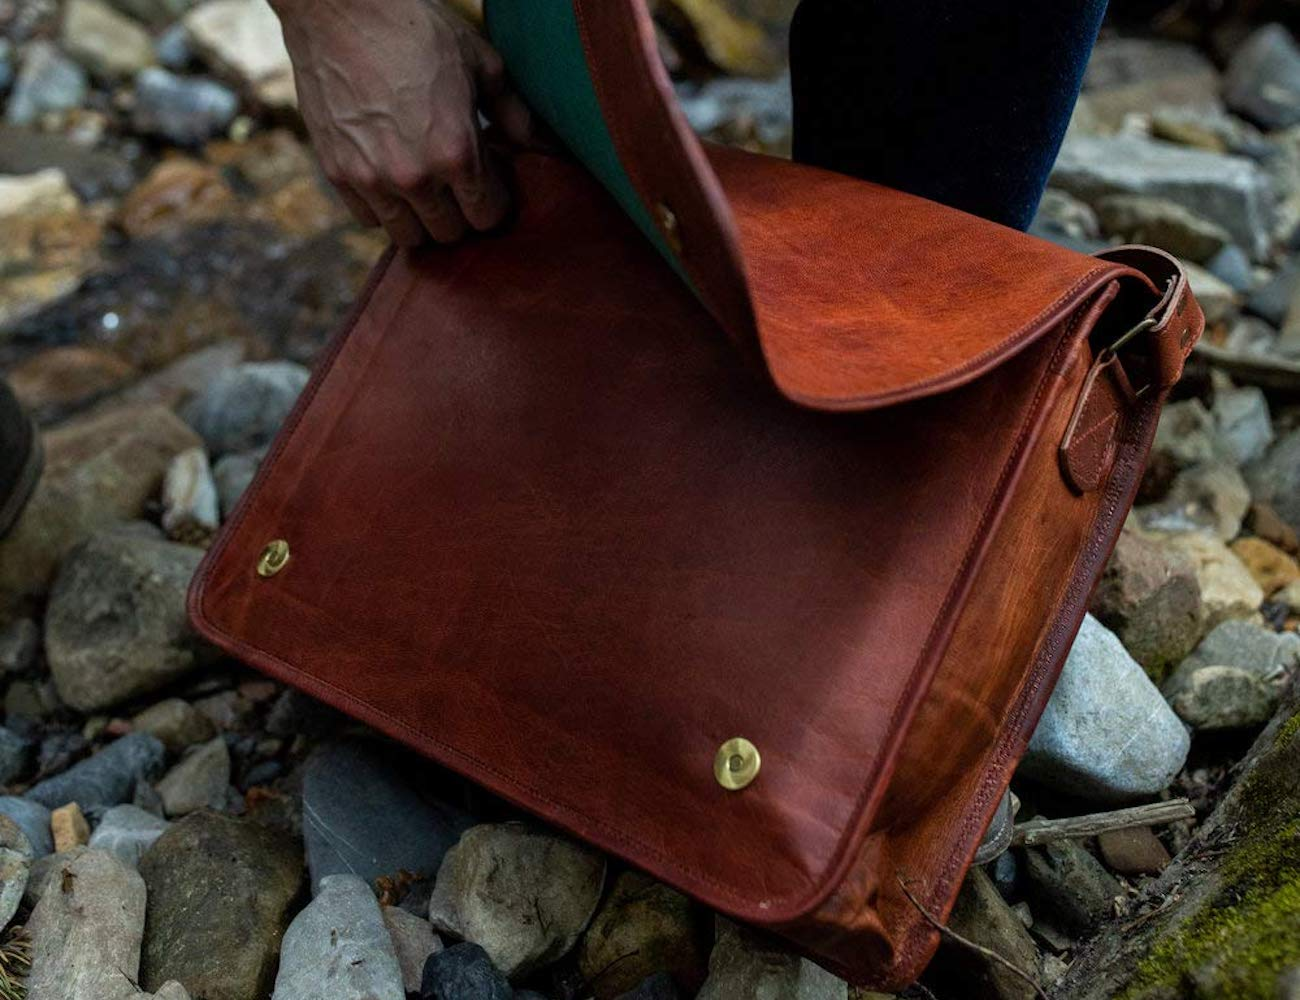 Kodiak Leather Messenger 3-Compartment Shoulder Bag is spacious enough for all your belongings